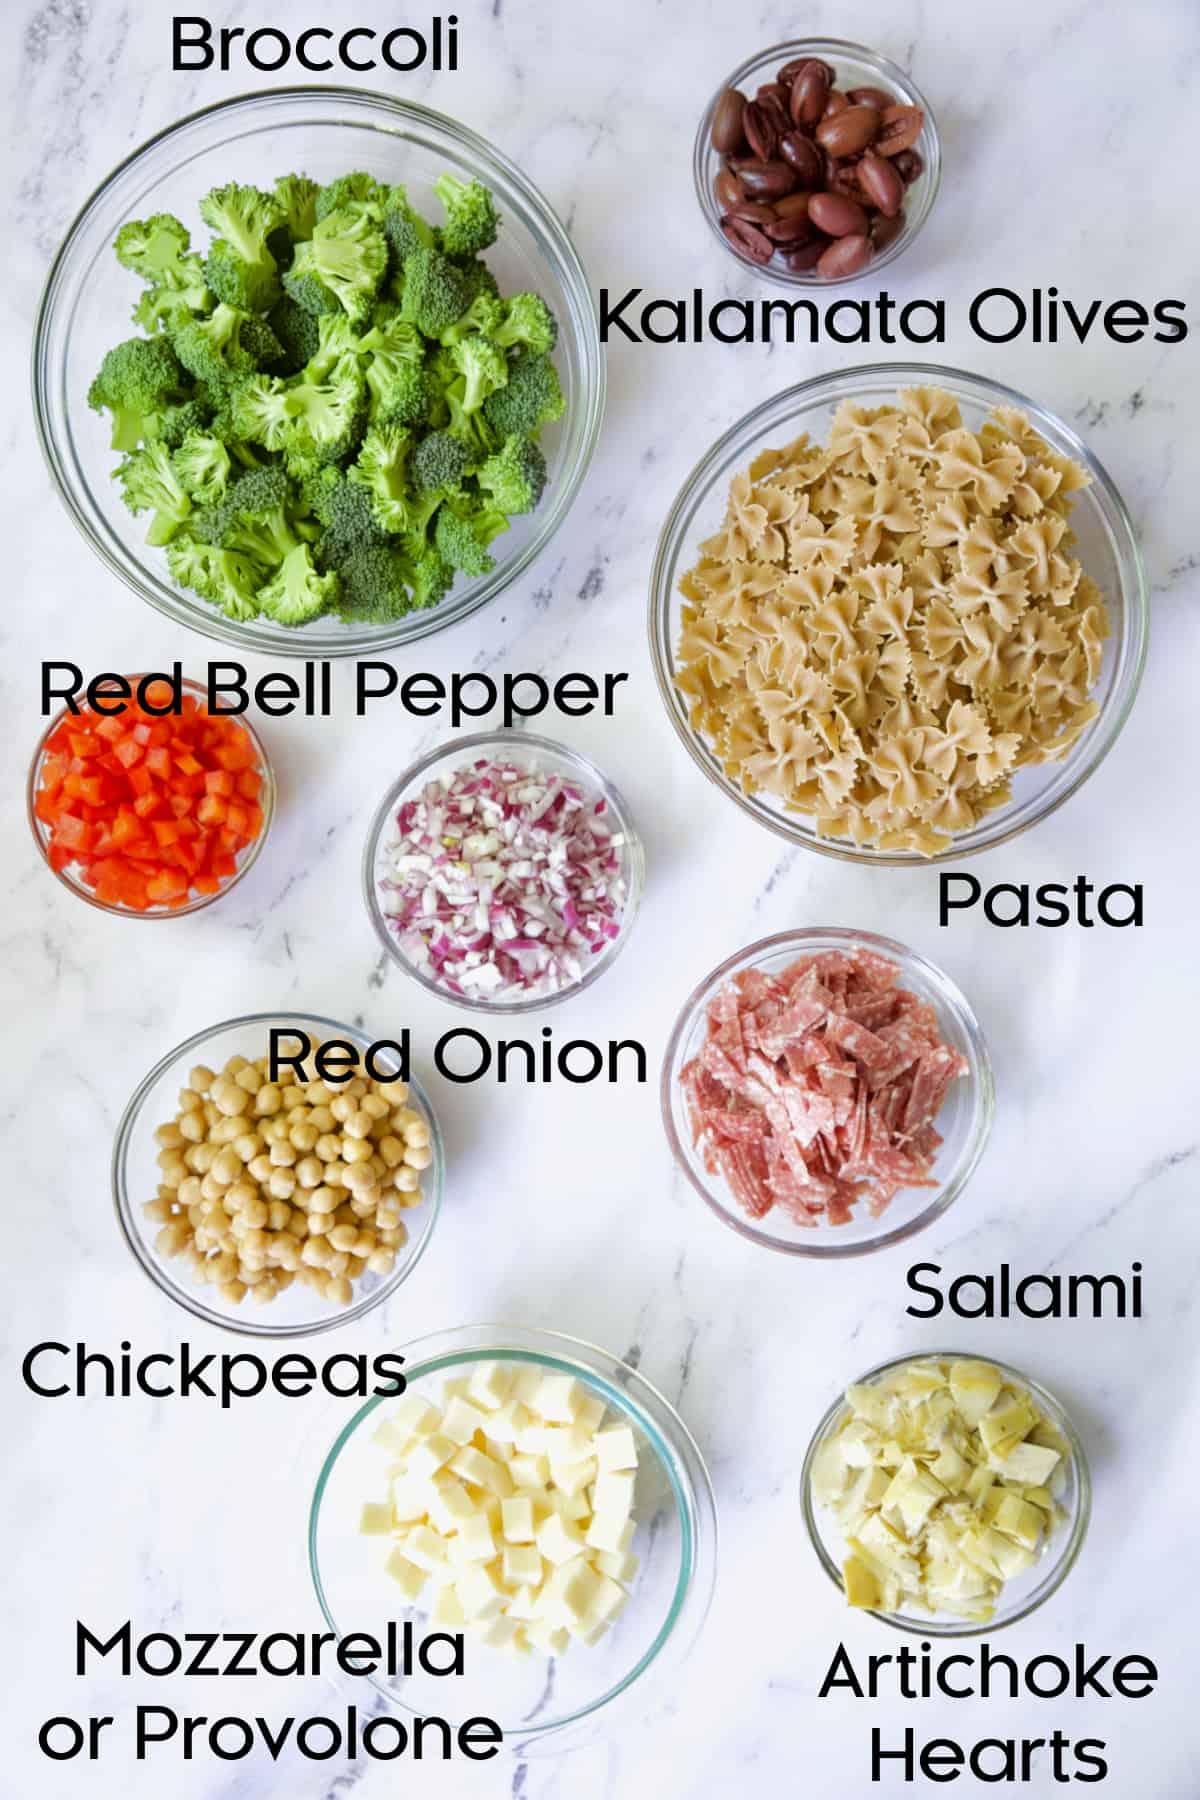 Ingredients for Antipasto Pasta Salad in glass bowls.